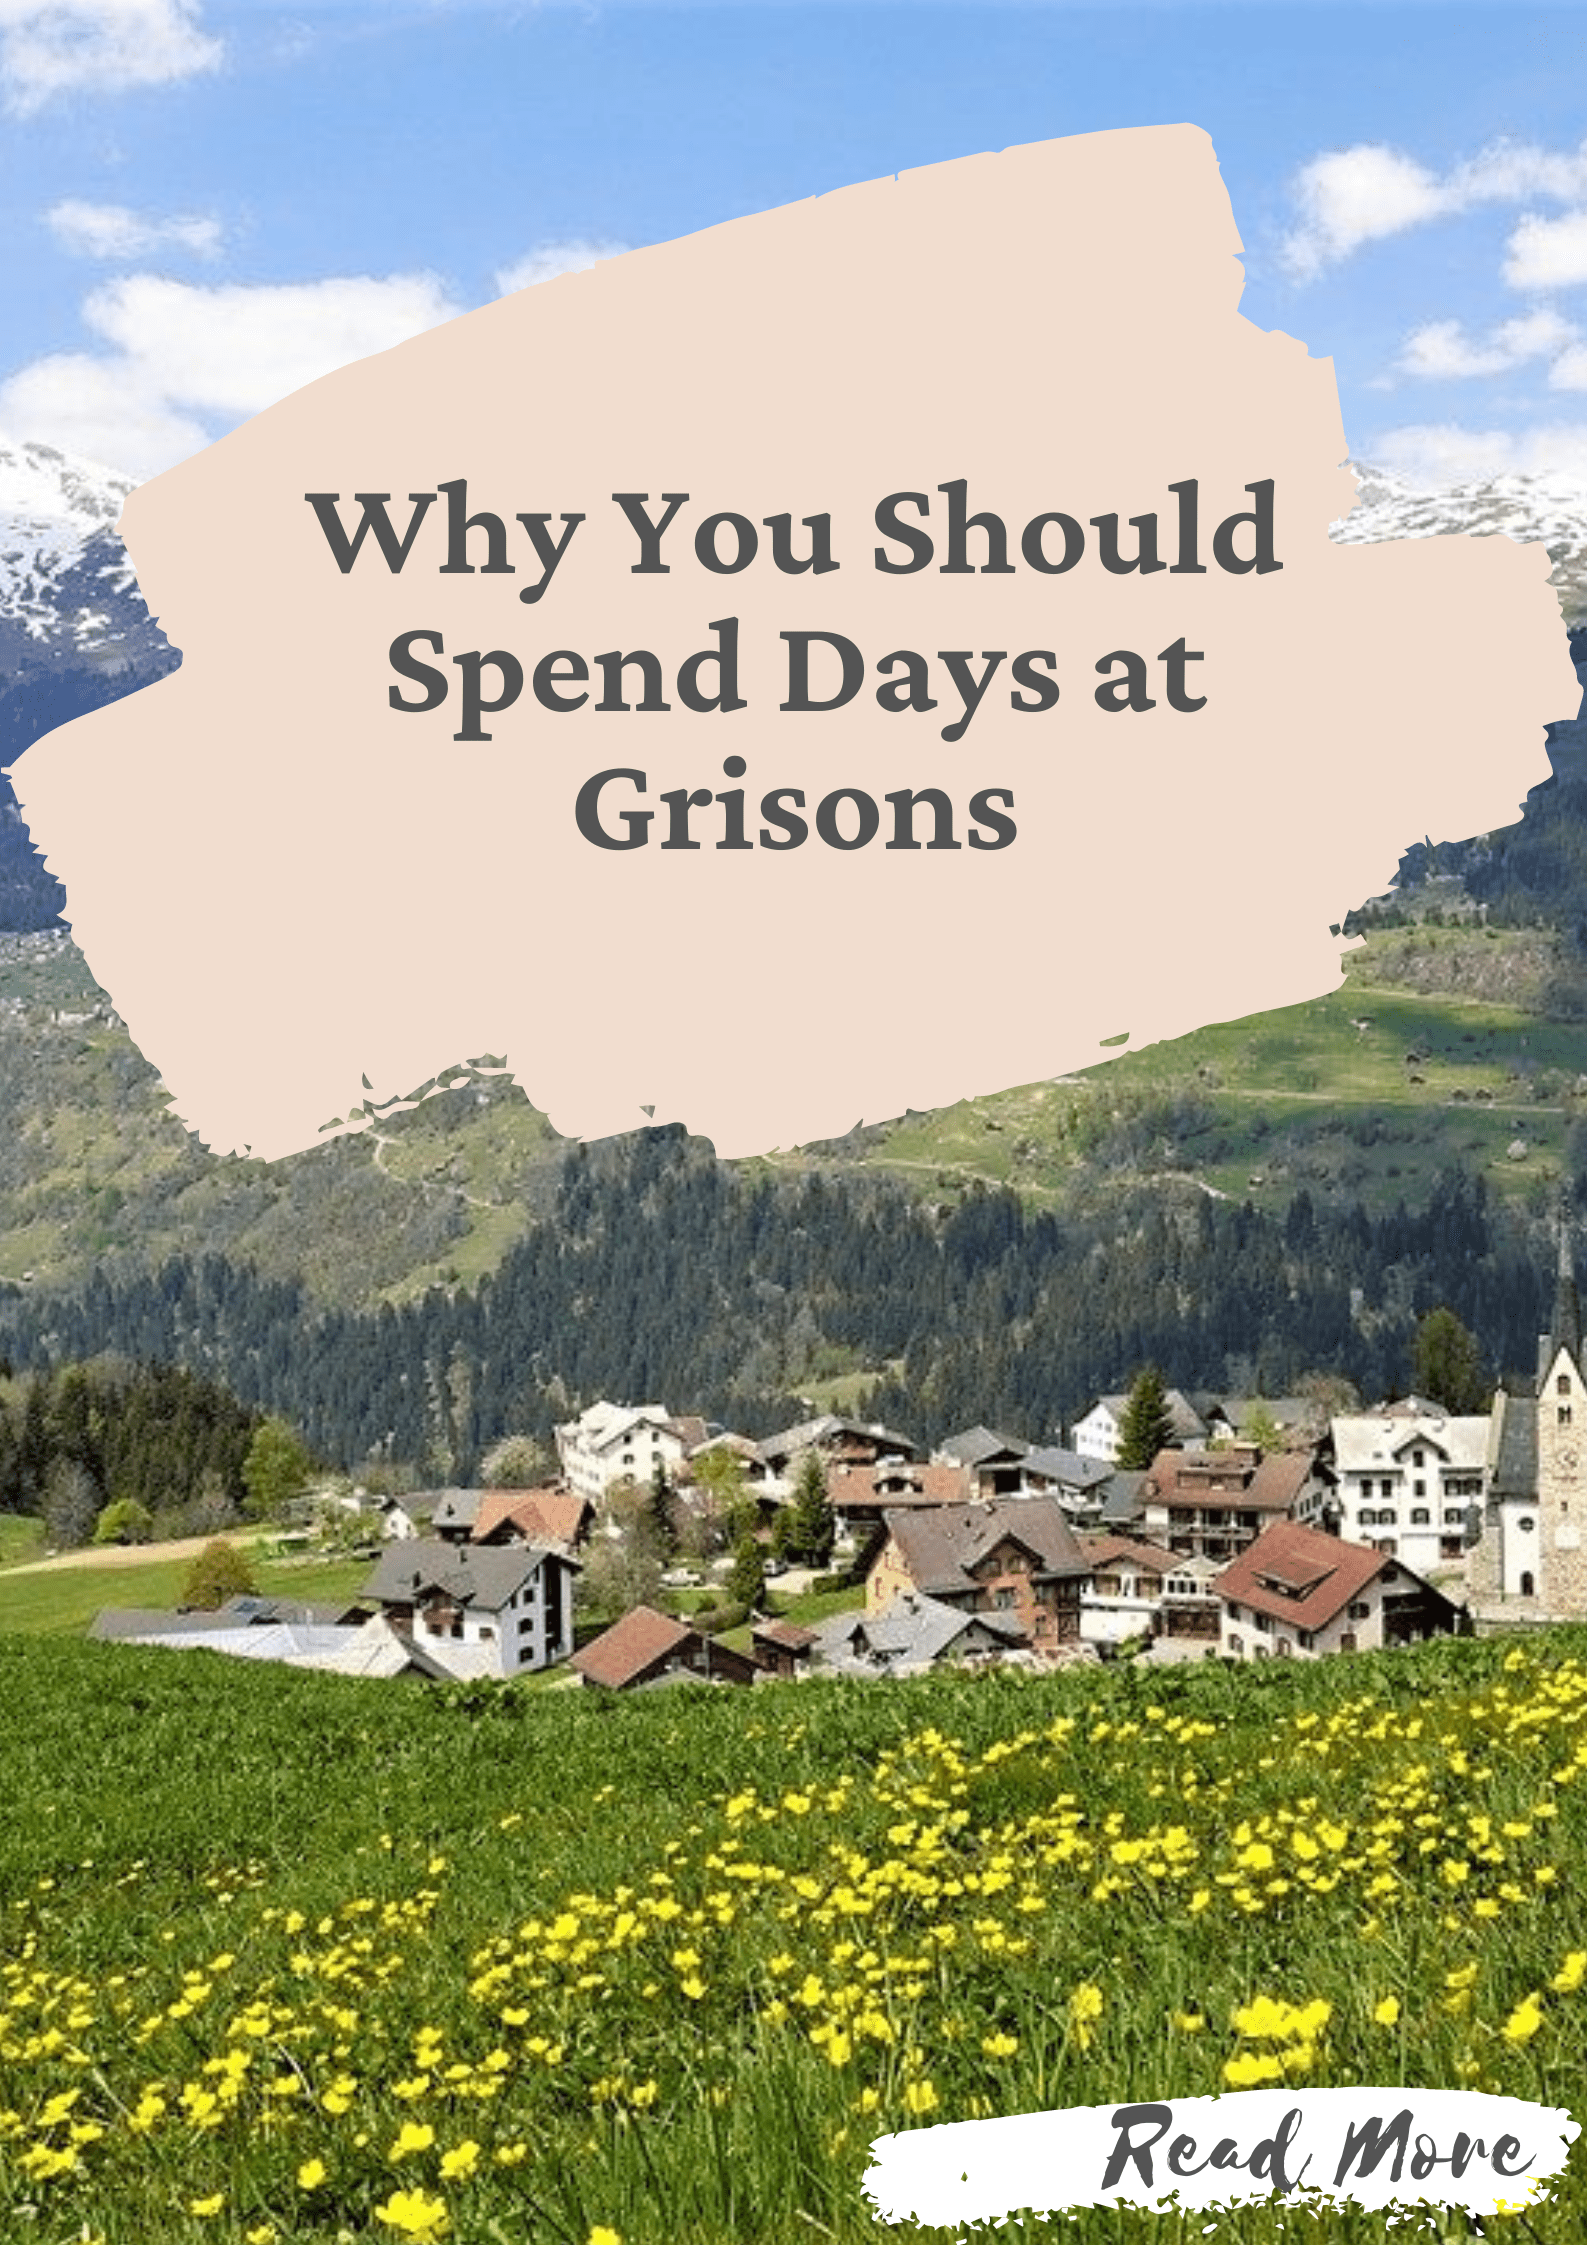 Why You Should Spend Days at Grisons